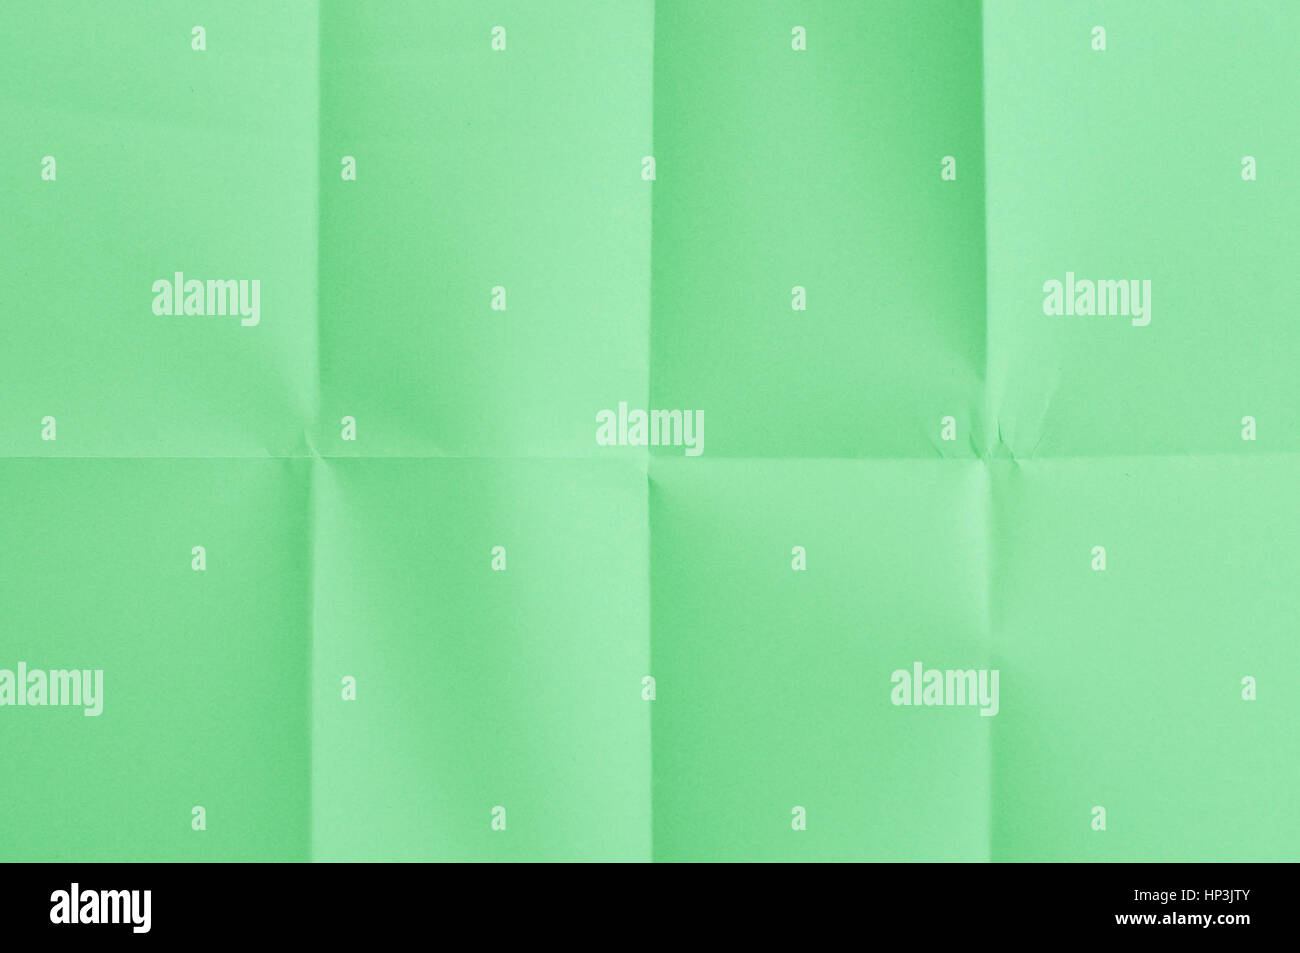 Green sheet of paper folded in eight parts - Stock Image